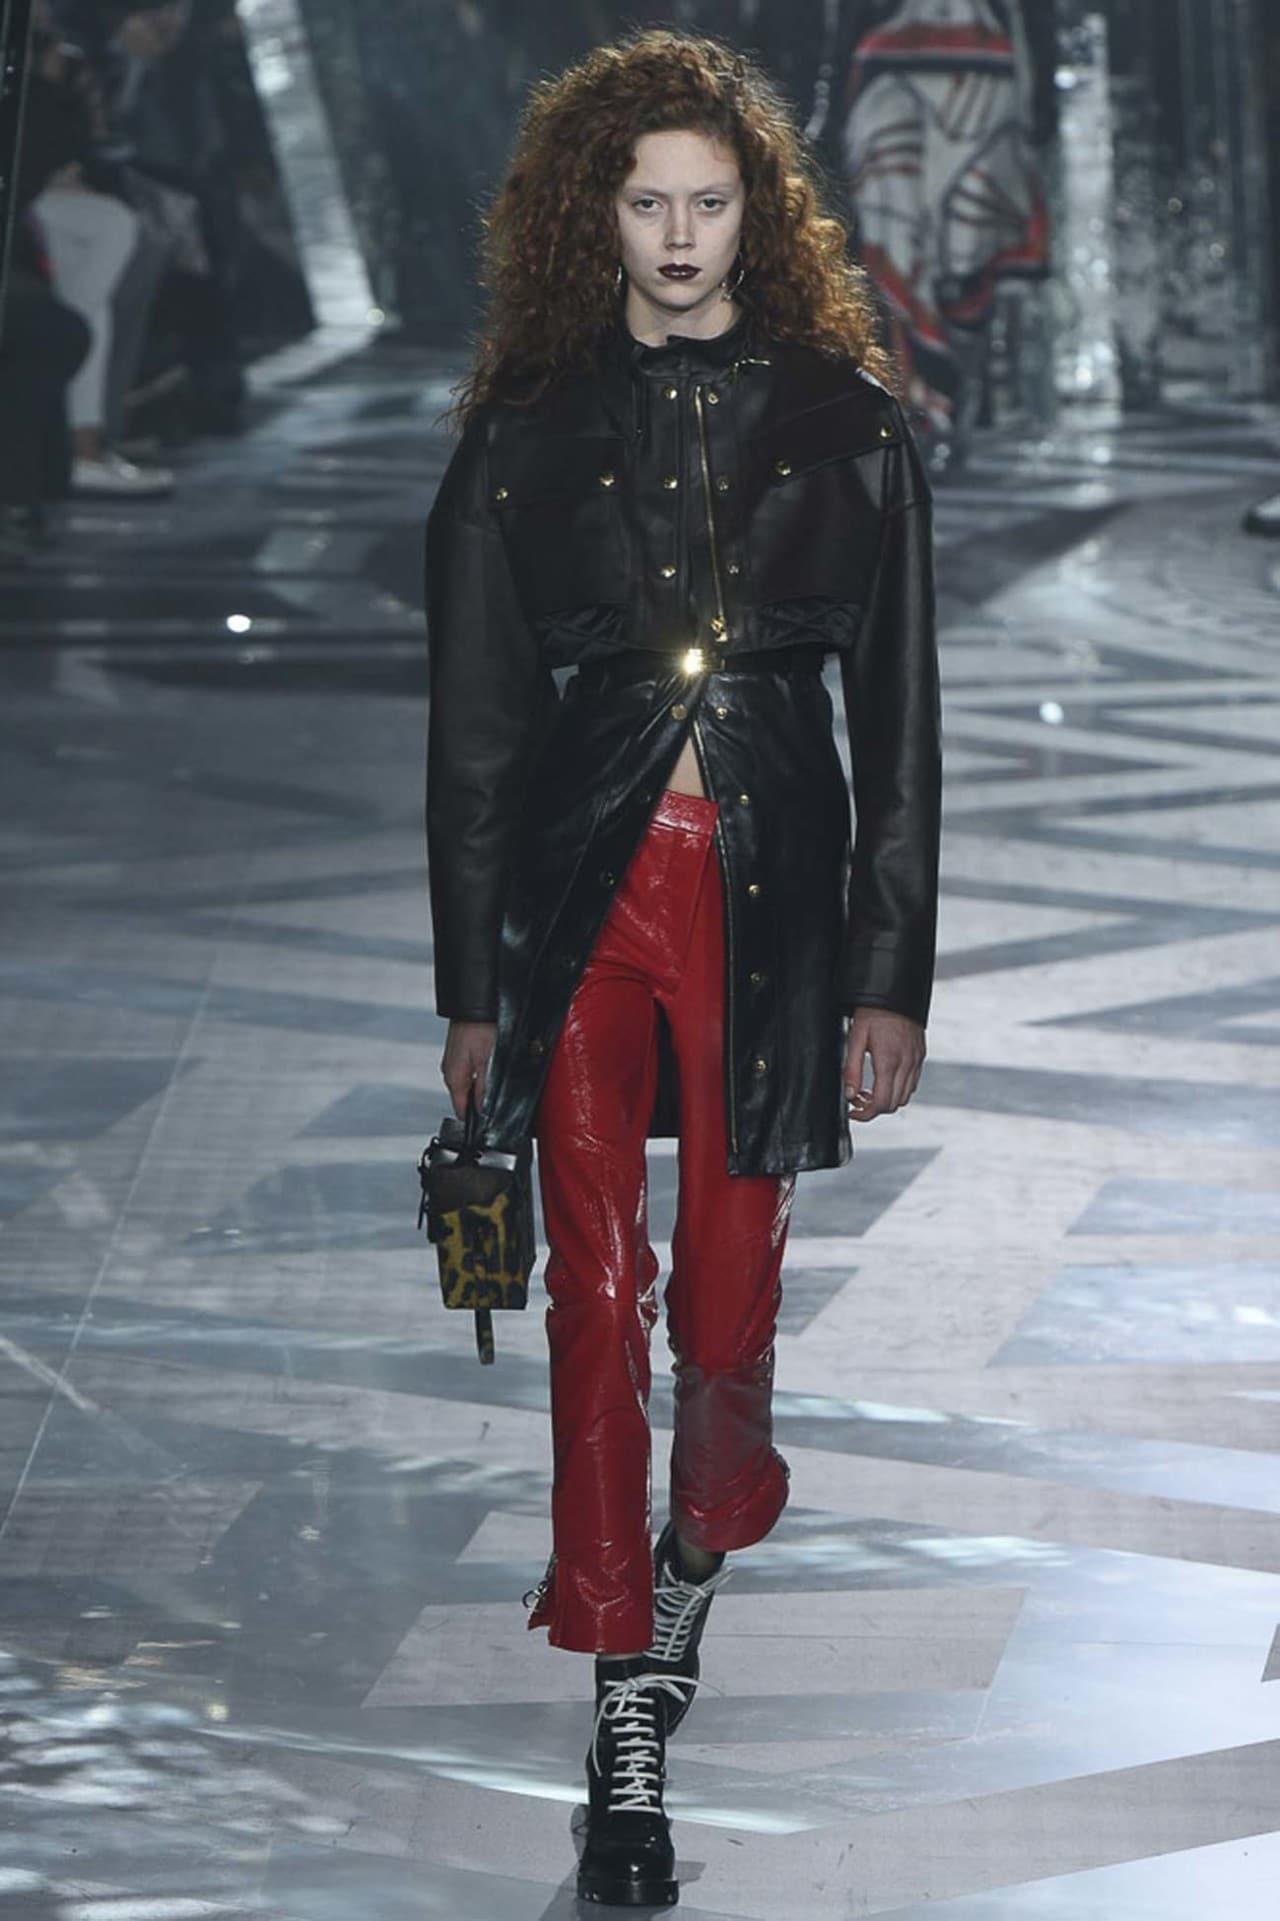 Louis Vuitton ready-to-wear autumn/winter '16/'17